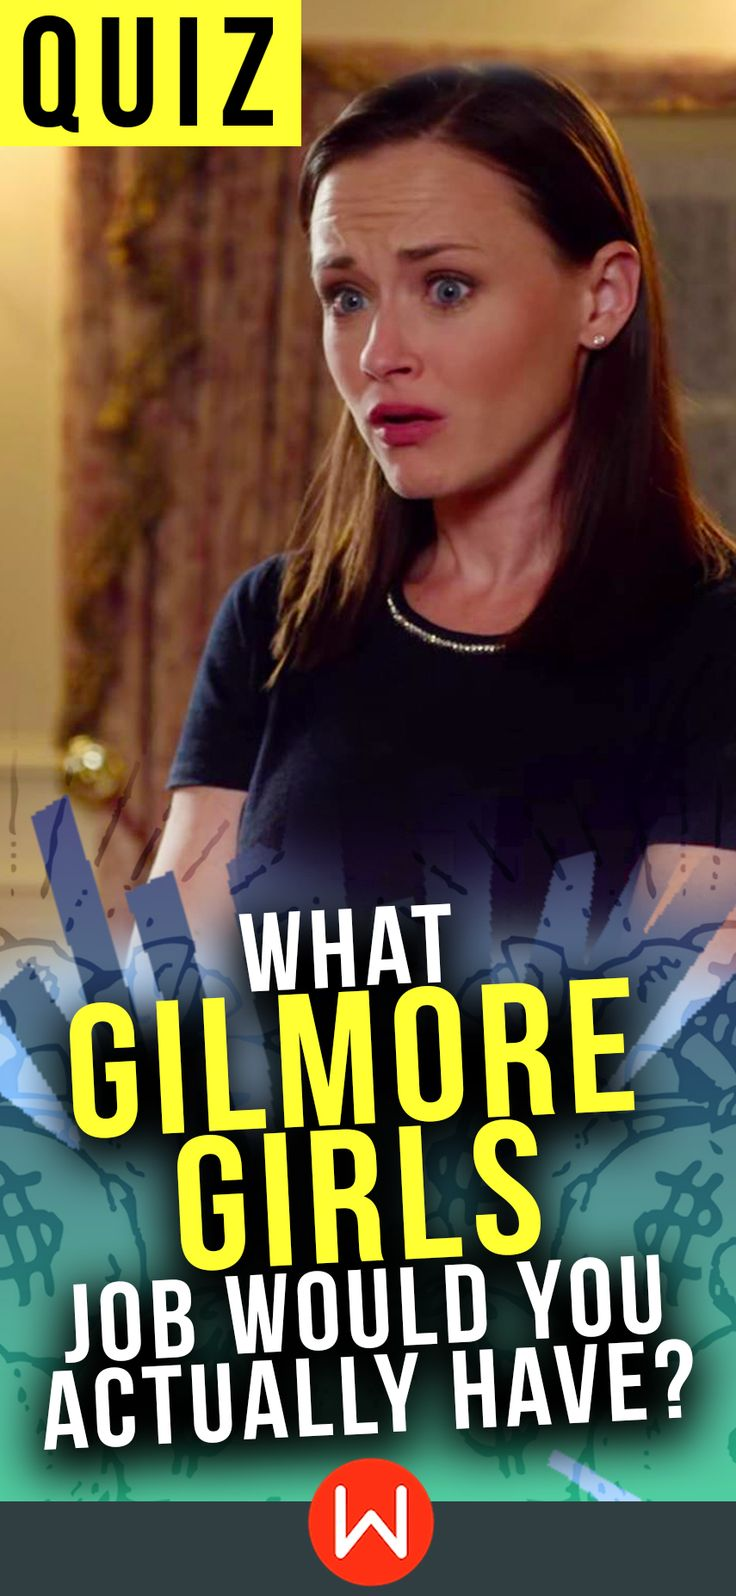 "Gilmore Girls quiz: What Gilmore Girl job would you have? buzzfeed quizzes, playbuzz quiz, girl quiz, personality test. ""Maybe we can form an all-girl band with Lane, you know, like Bananarama?"""